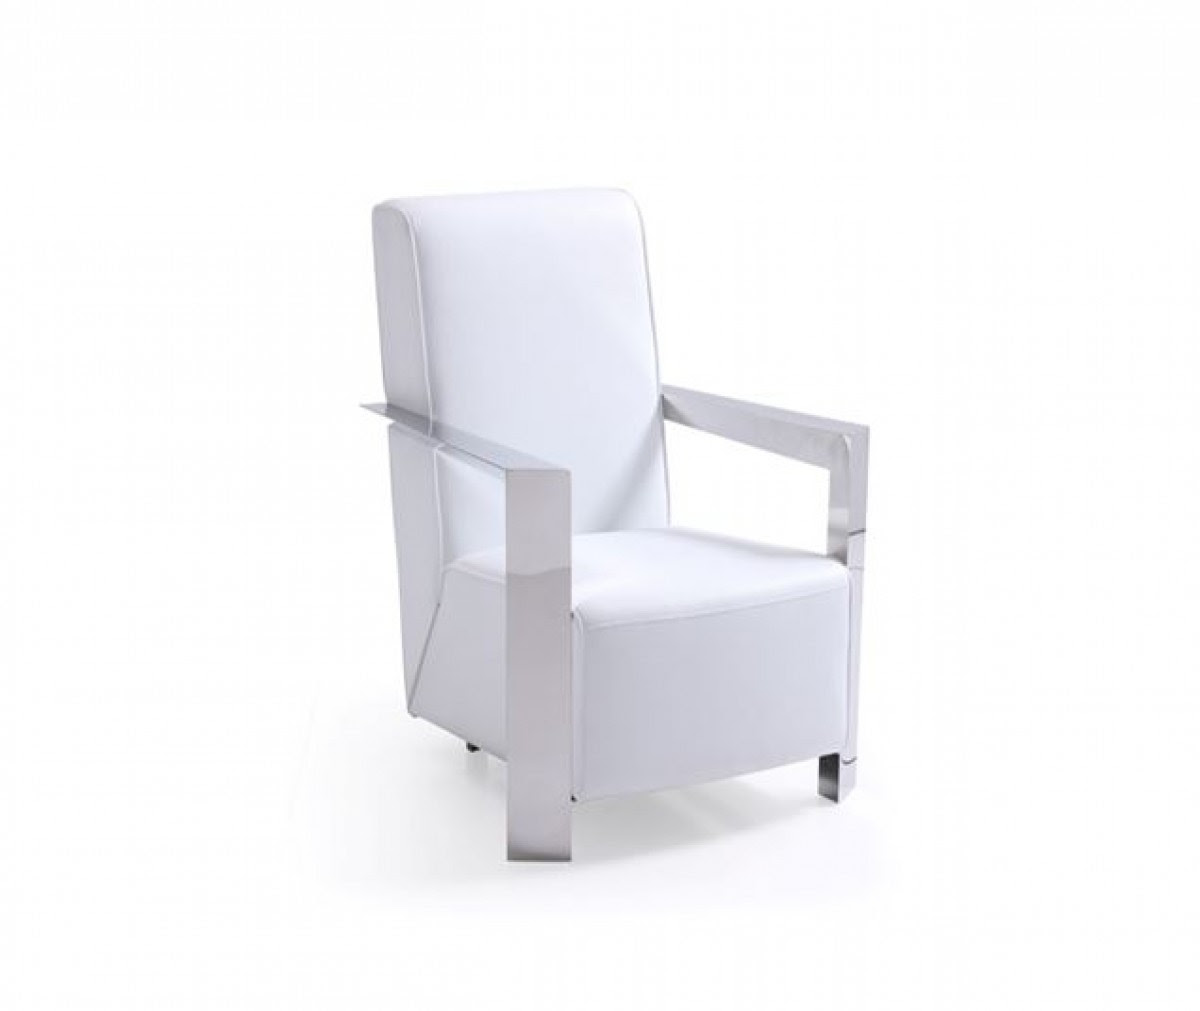 Modrest Niro Modern White Bonded Leather Accent Chair New Products